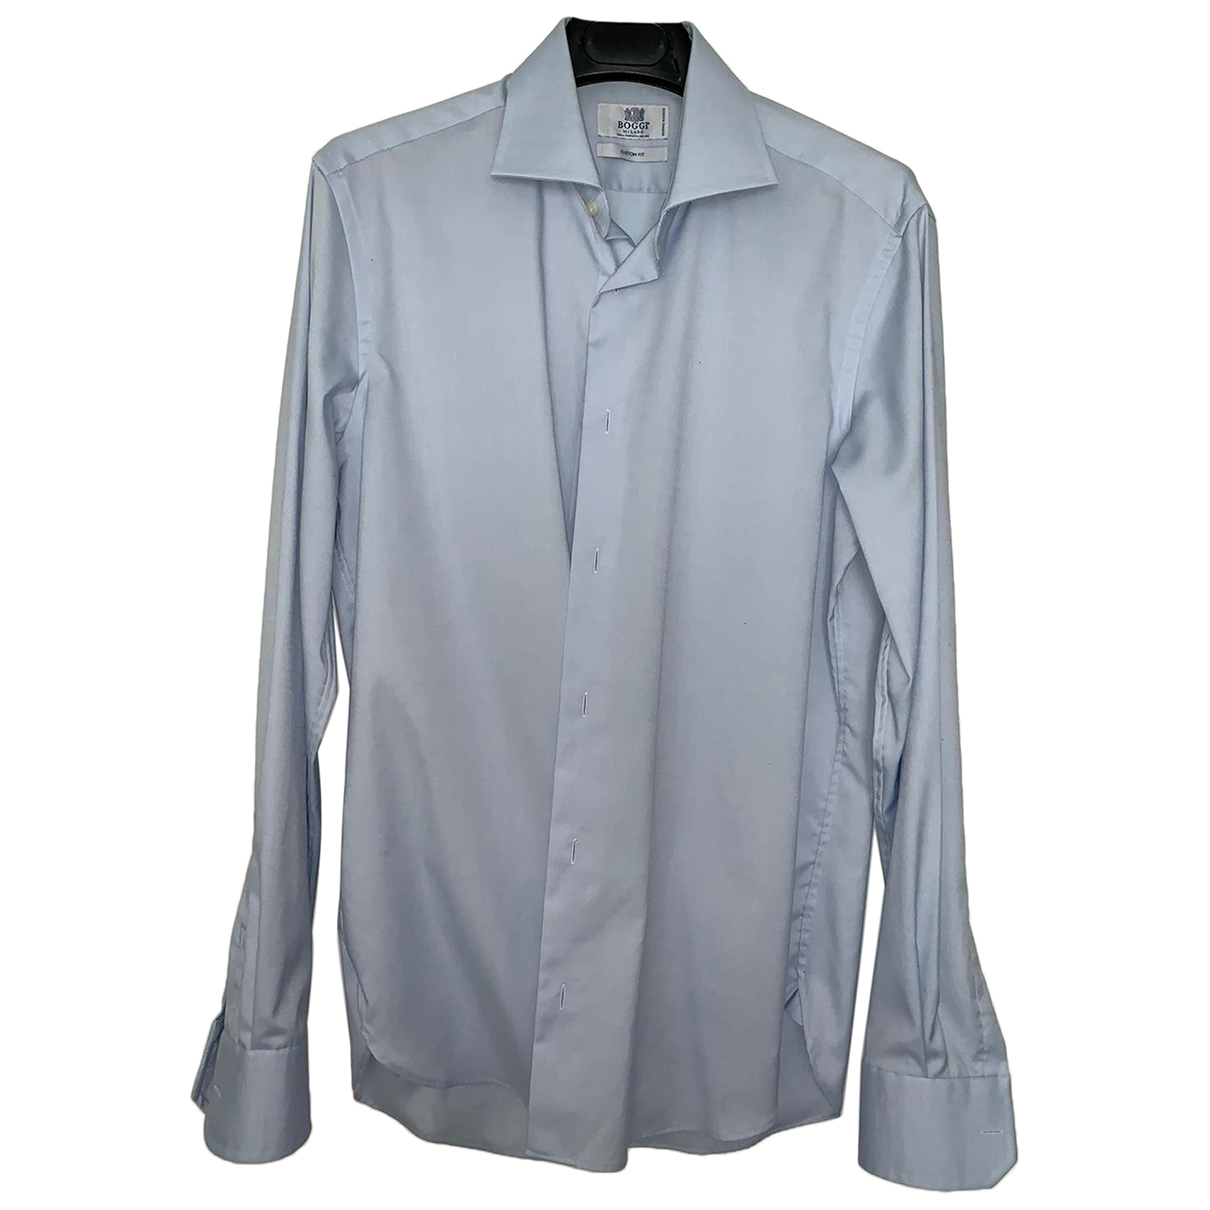 Boggi \N Turquoise Cotton Shirts for Men 39 EU (tour de cou / collar)